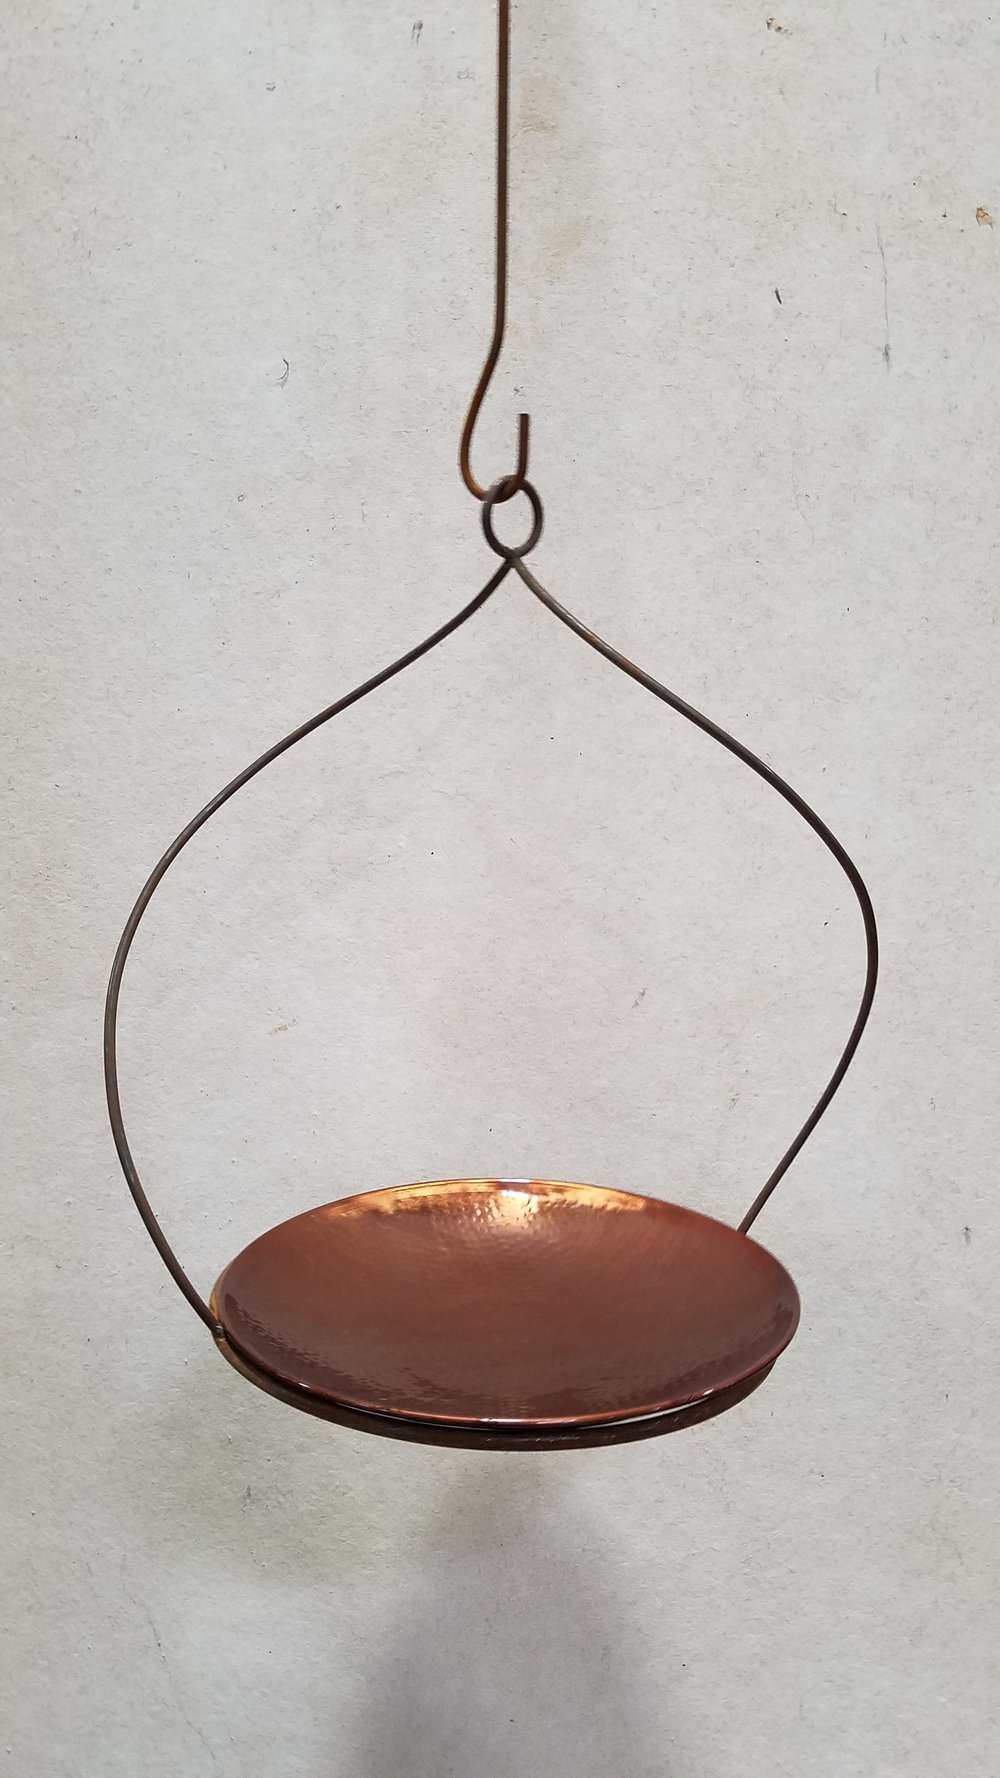 "Twisted Hanging Pot Holder 14 (14TW) Fits 14"" Pot; Pictured with Birdbath 14"" (BB14)"